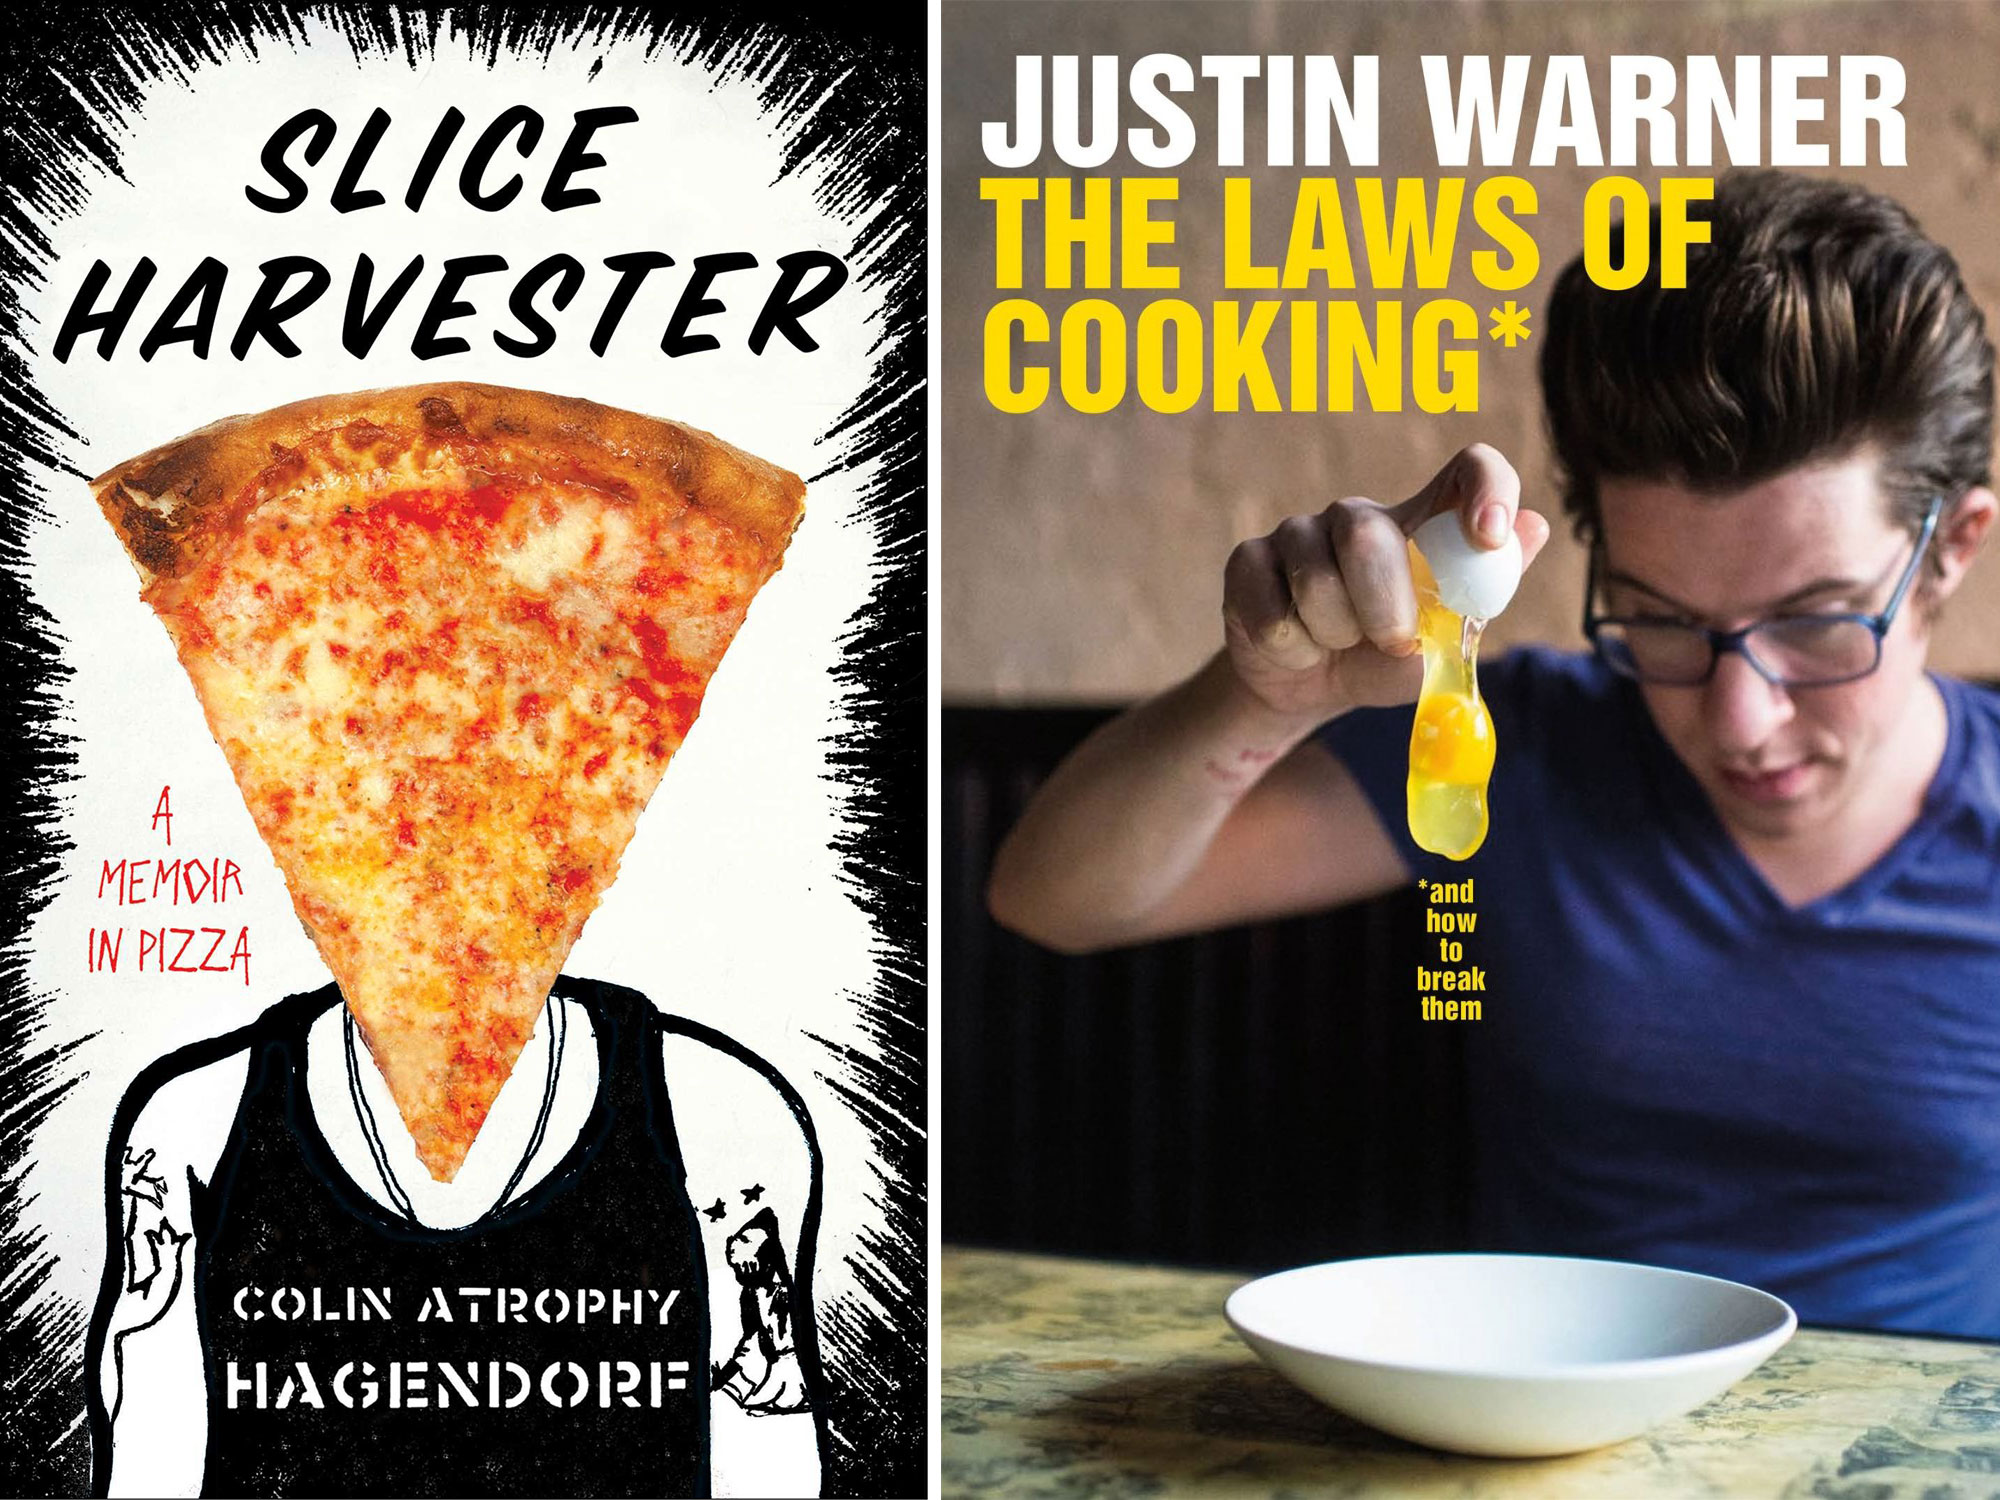 Book Deals: A History of Oysters, a Pizza Memoir, Justin Warner's First Cookbook, and More